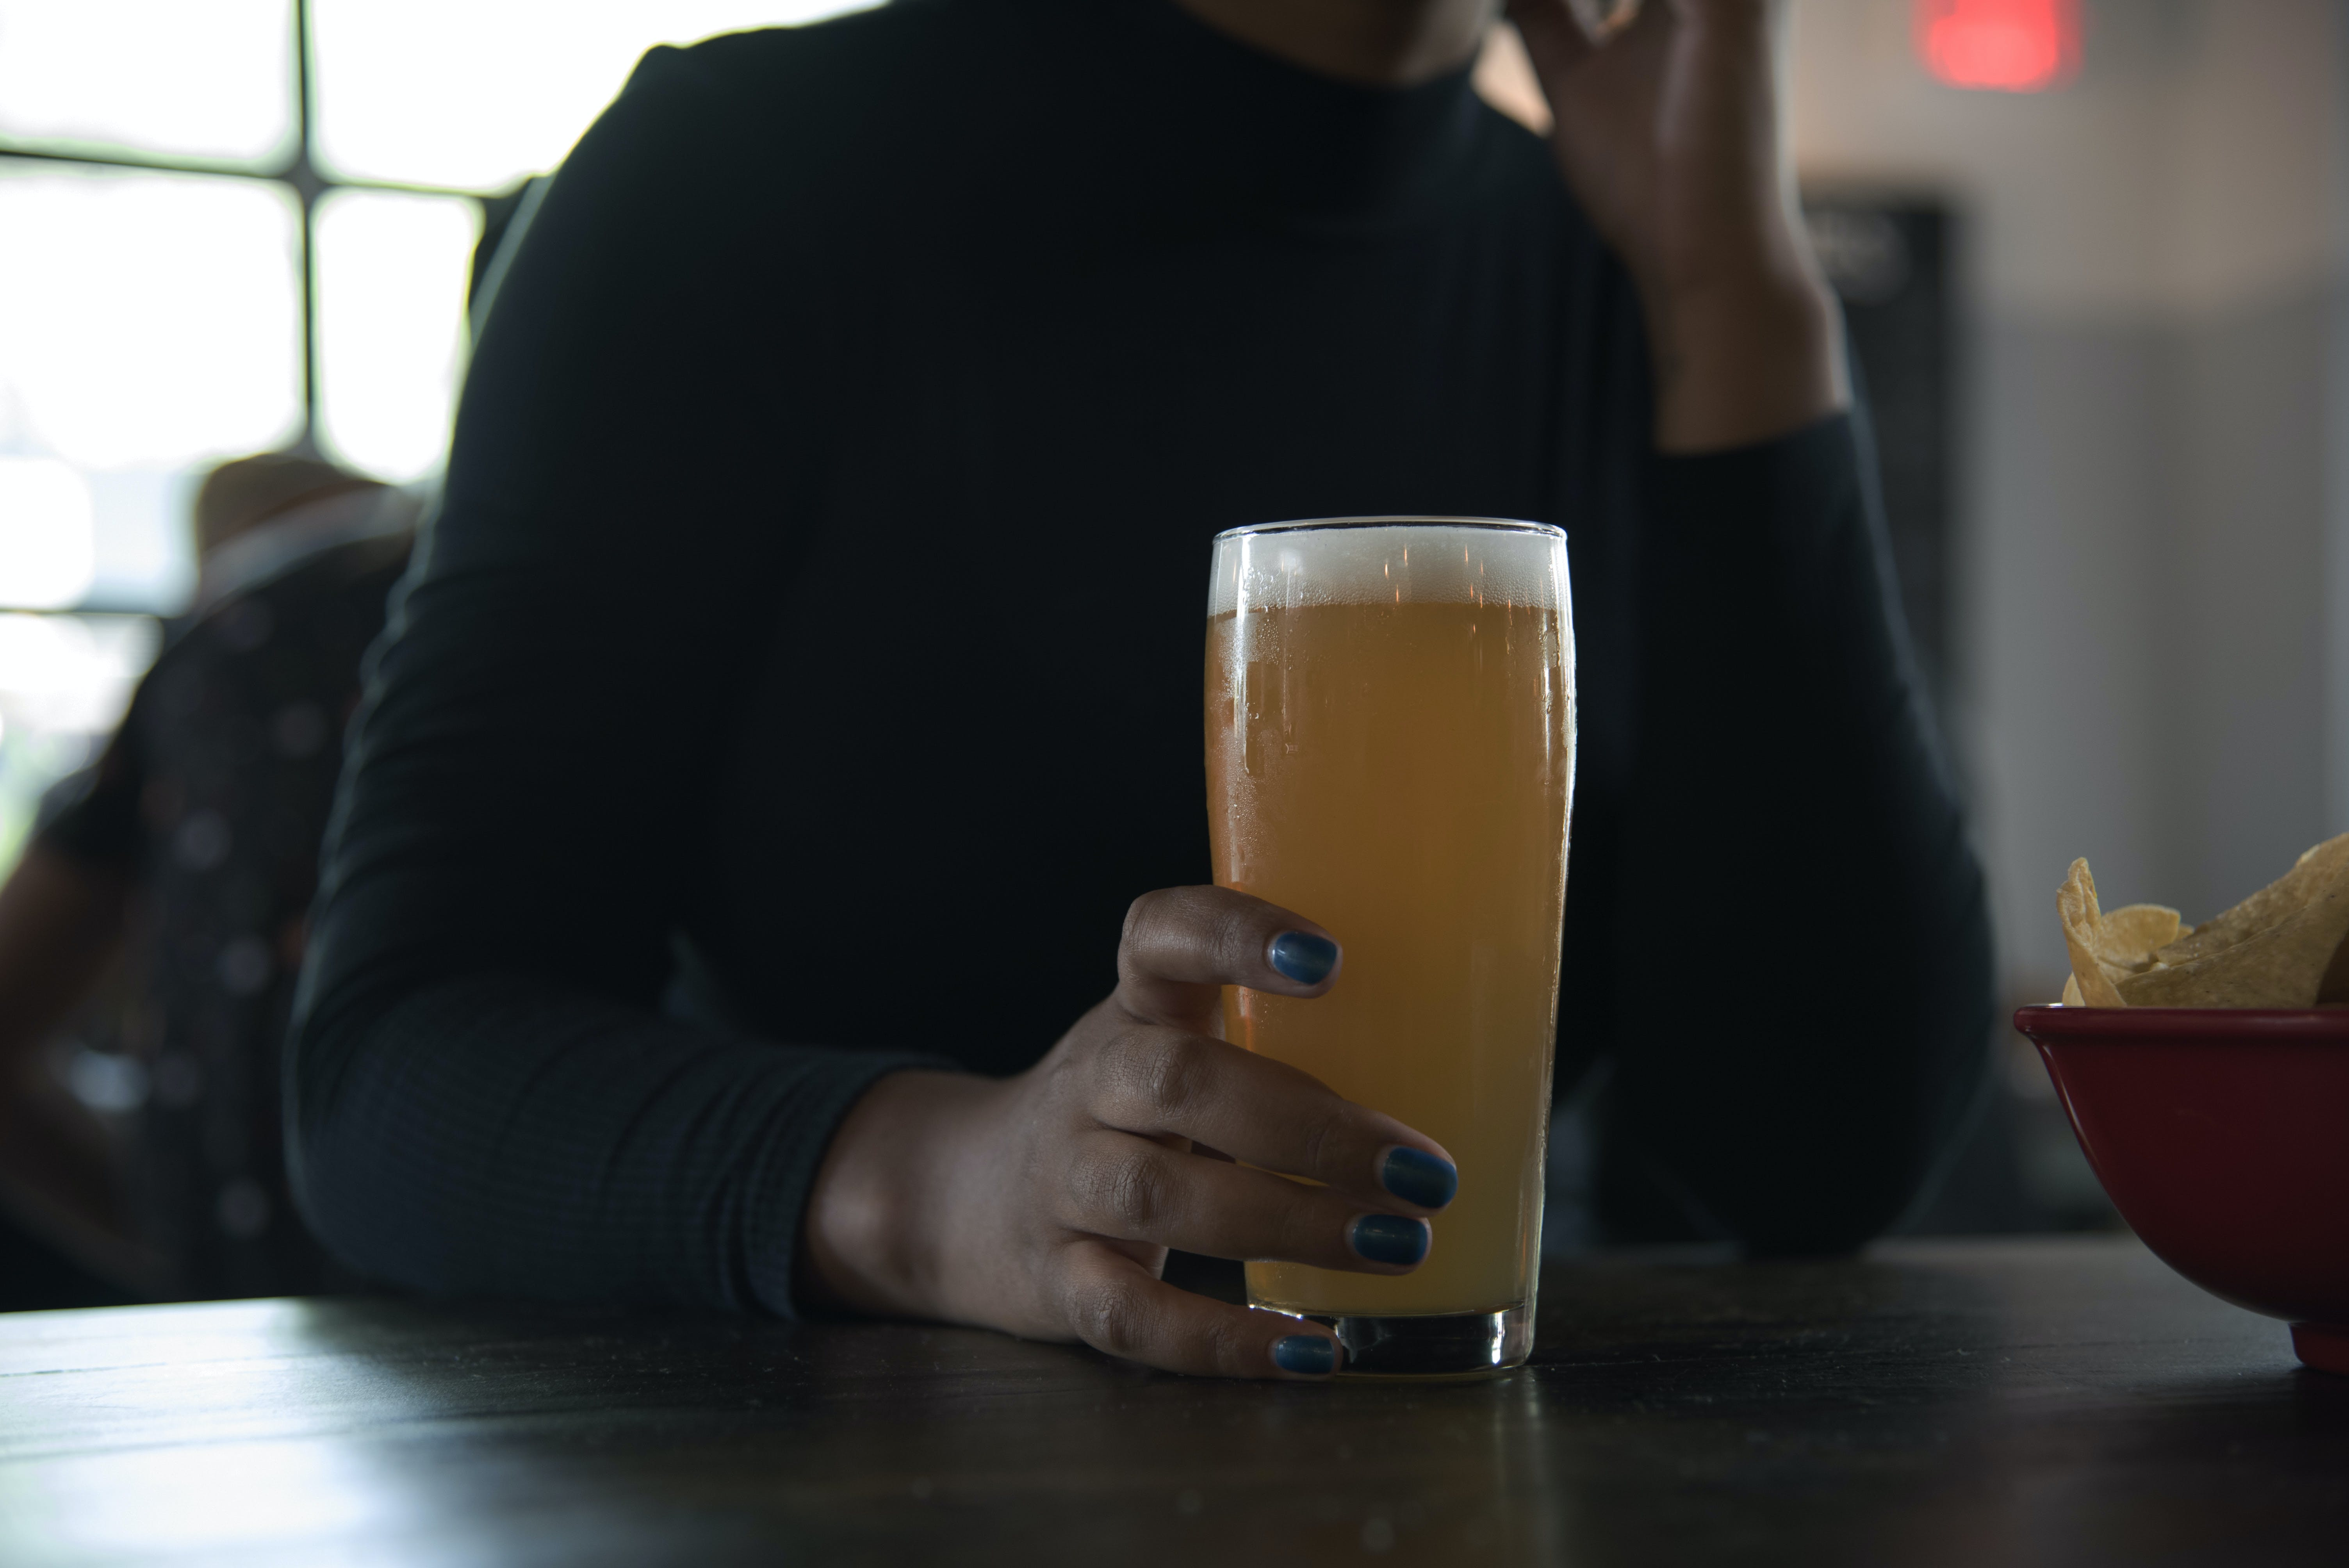 Person Holding Drinking Glass With Orange Liquid